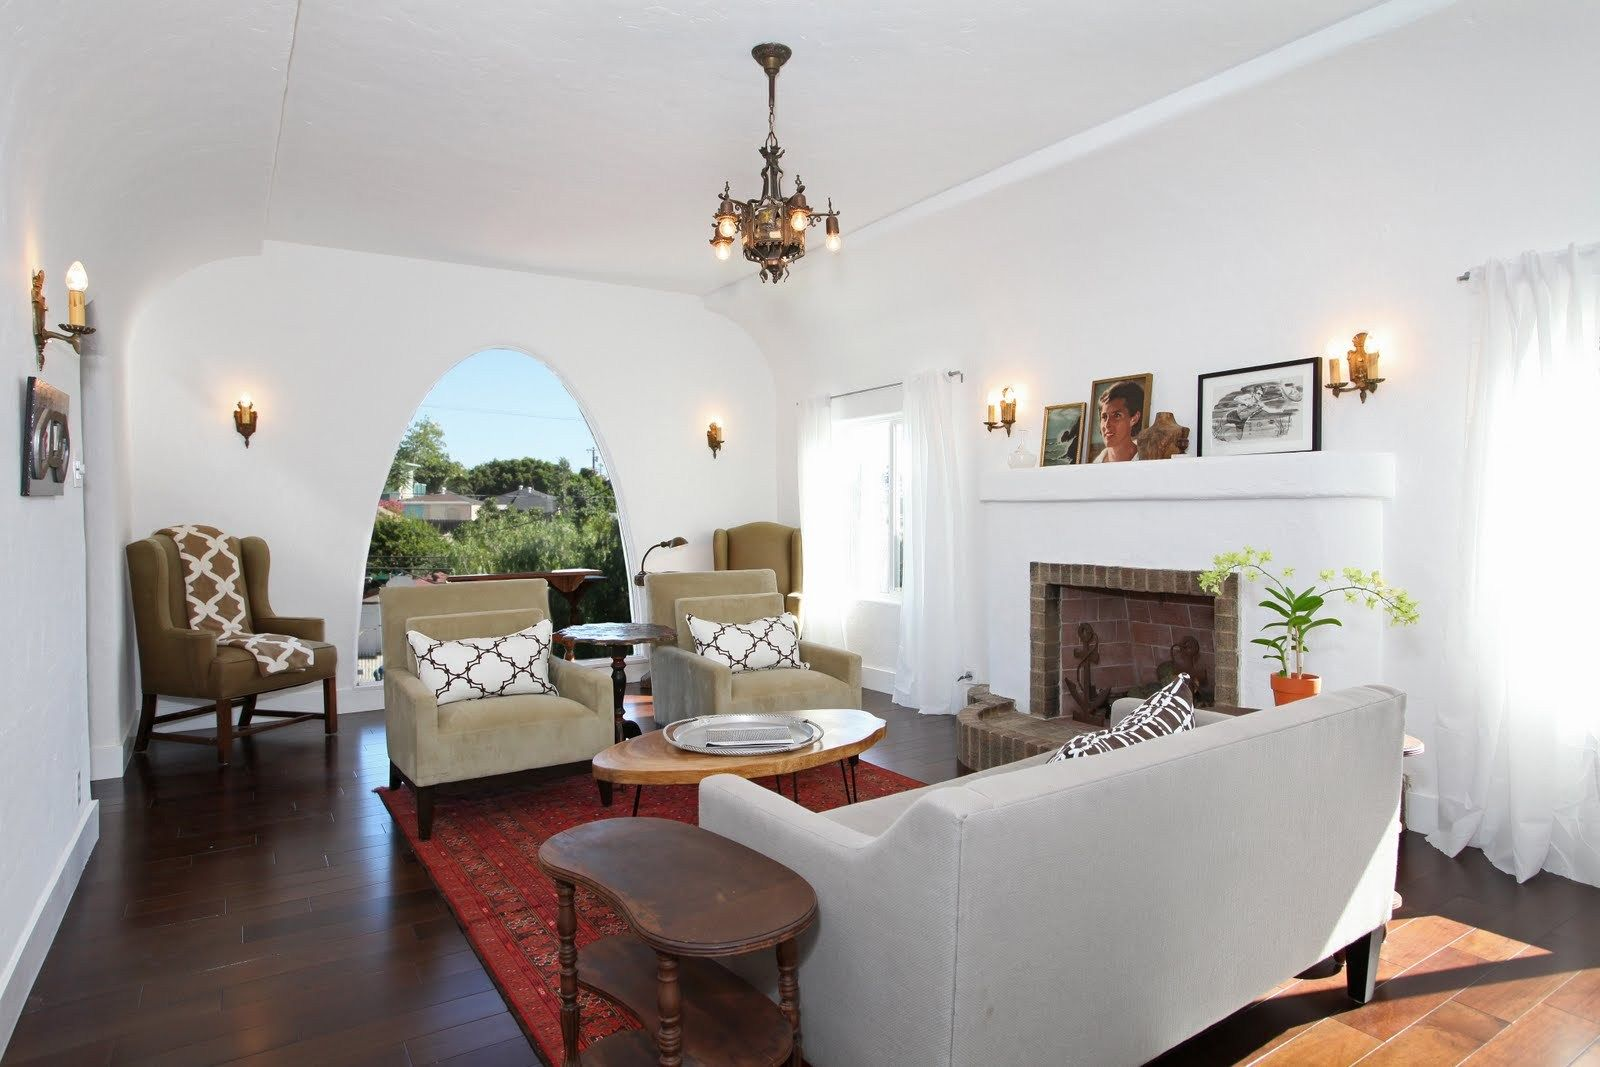 living+room+arched+window+picture+view+white+walls+club+chairs+